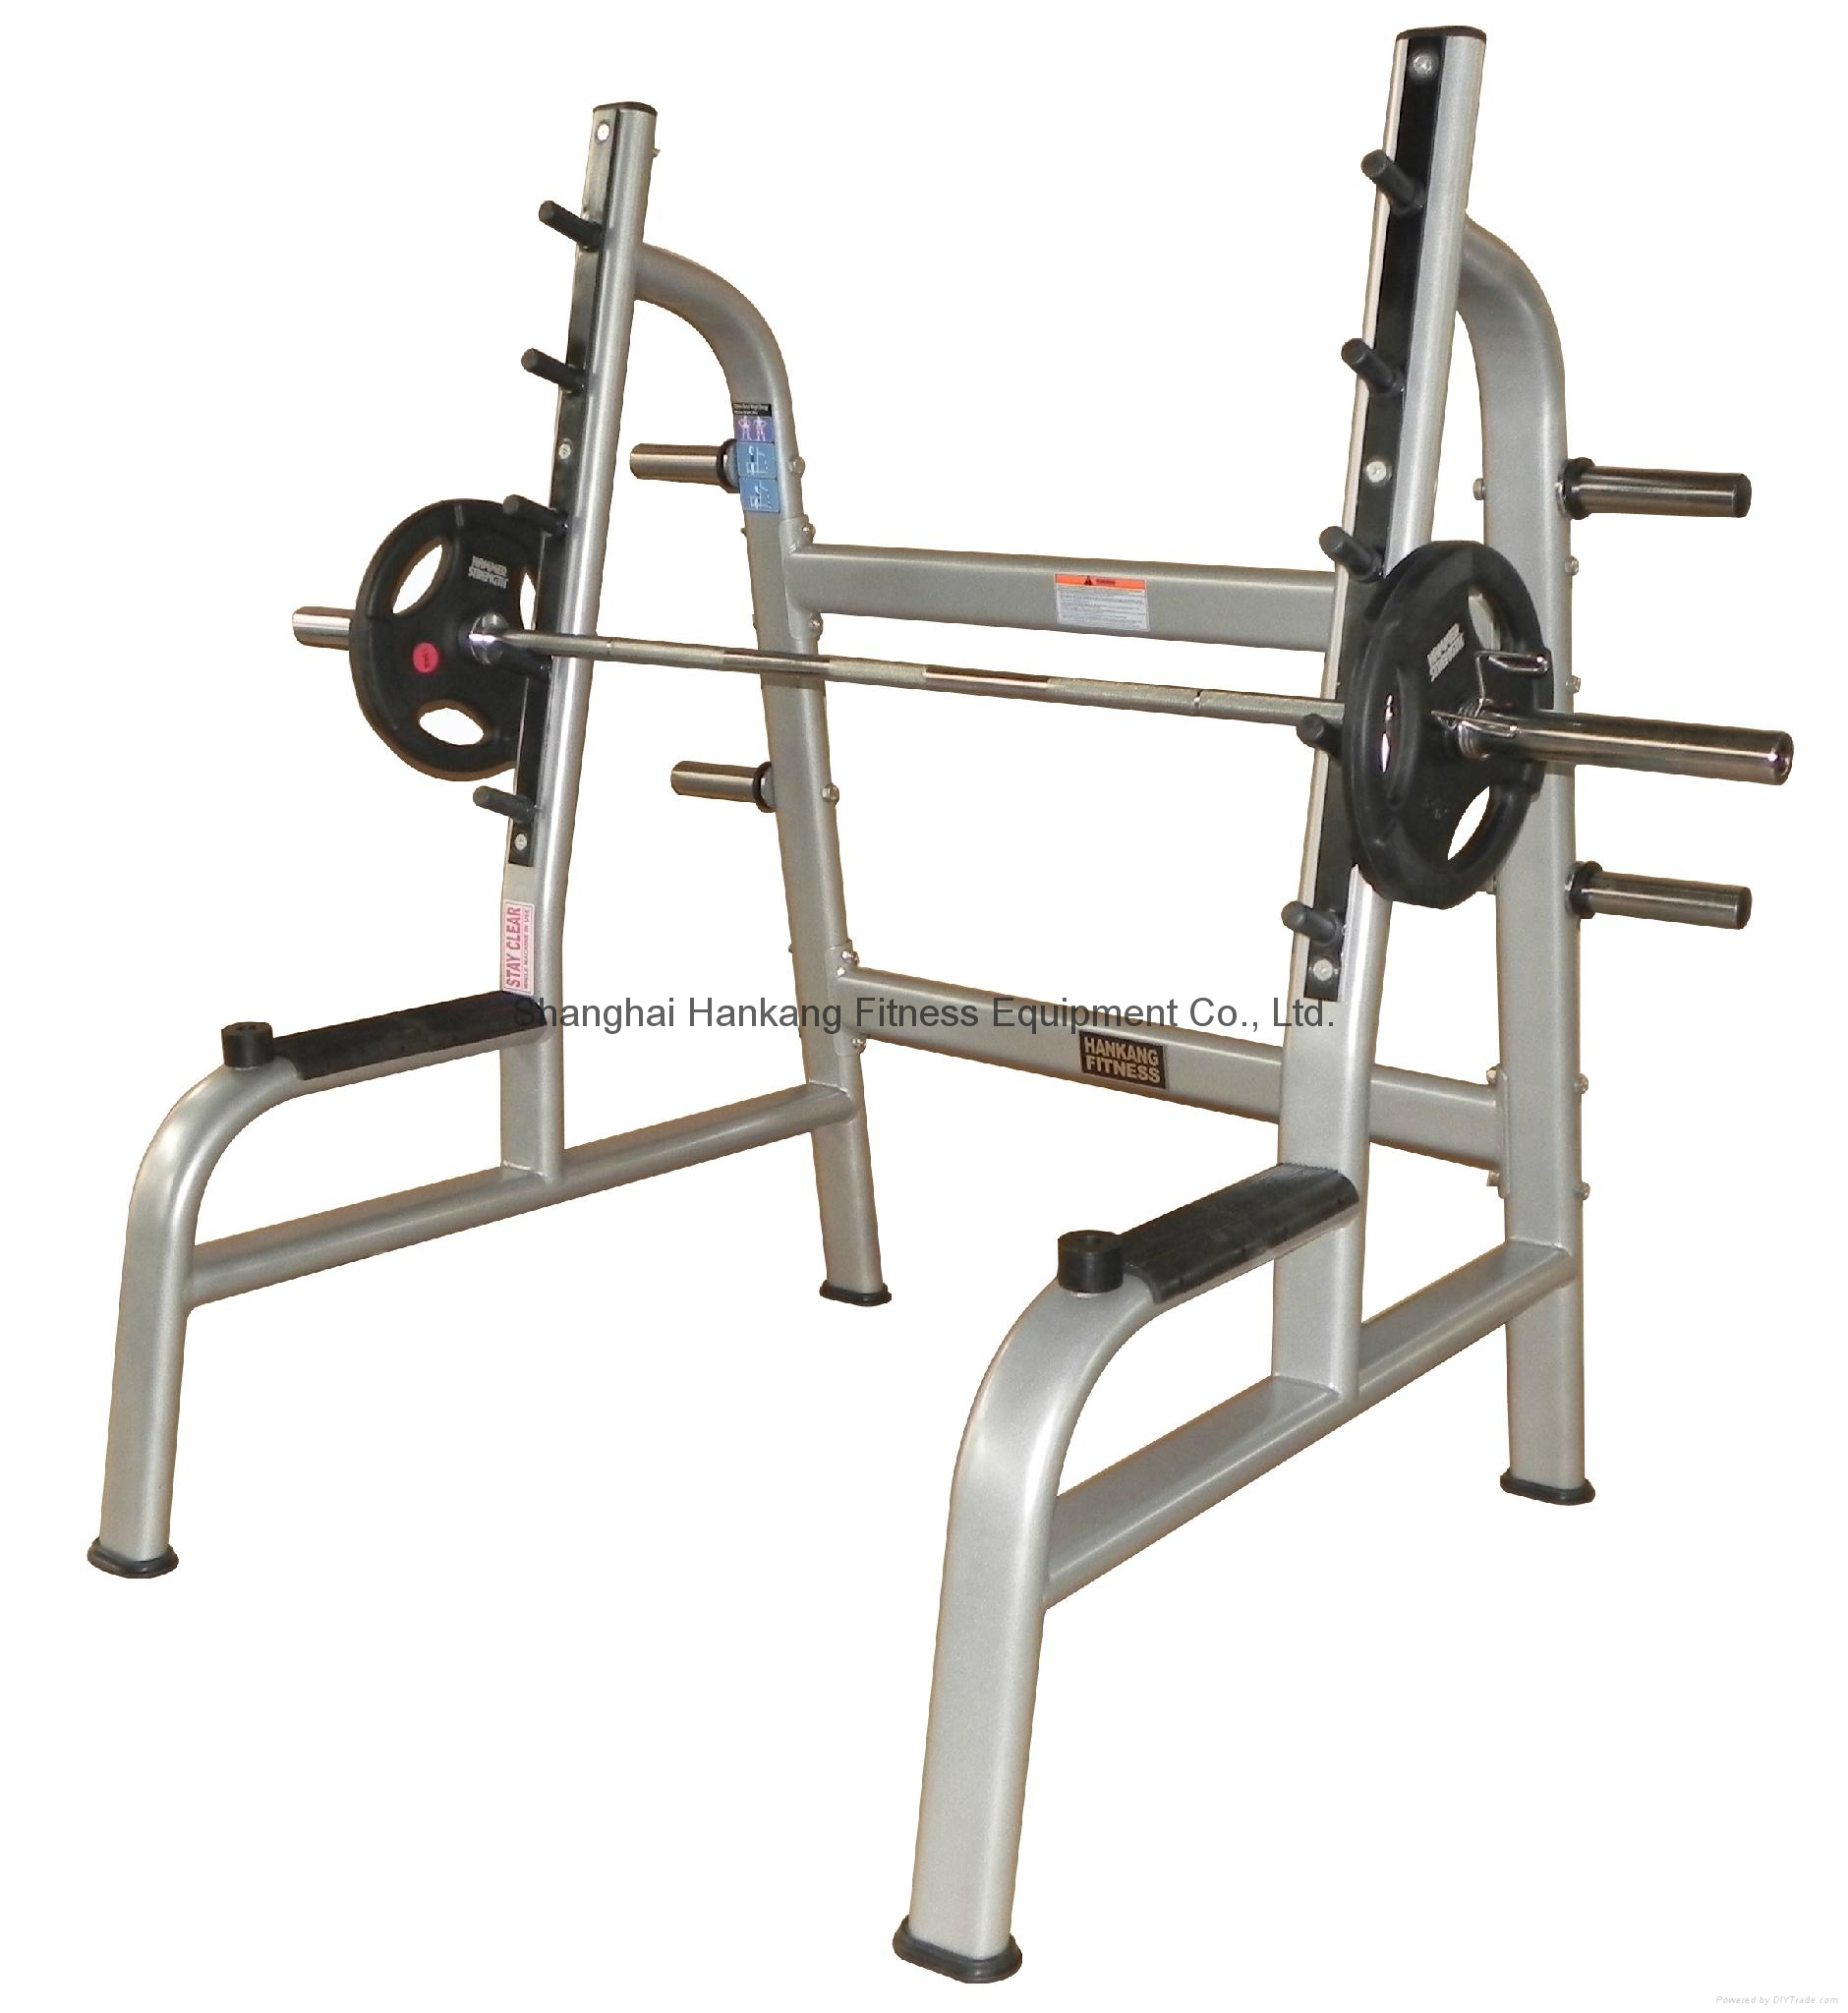 Fitness Equipment Home Gym Body Building Power Squat Rack Hk 1037 Hankang Fitness China Manufacturer Body Building Sport Products